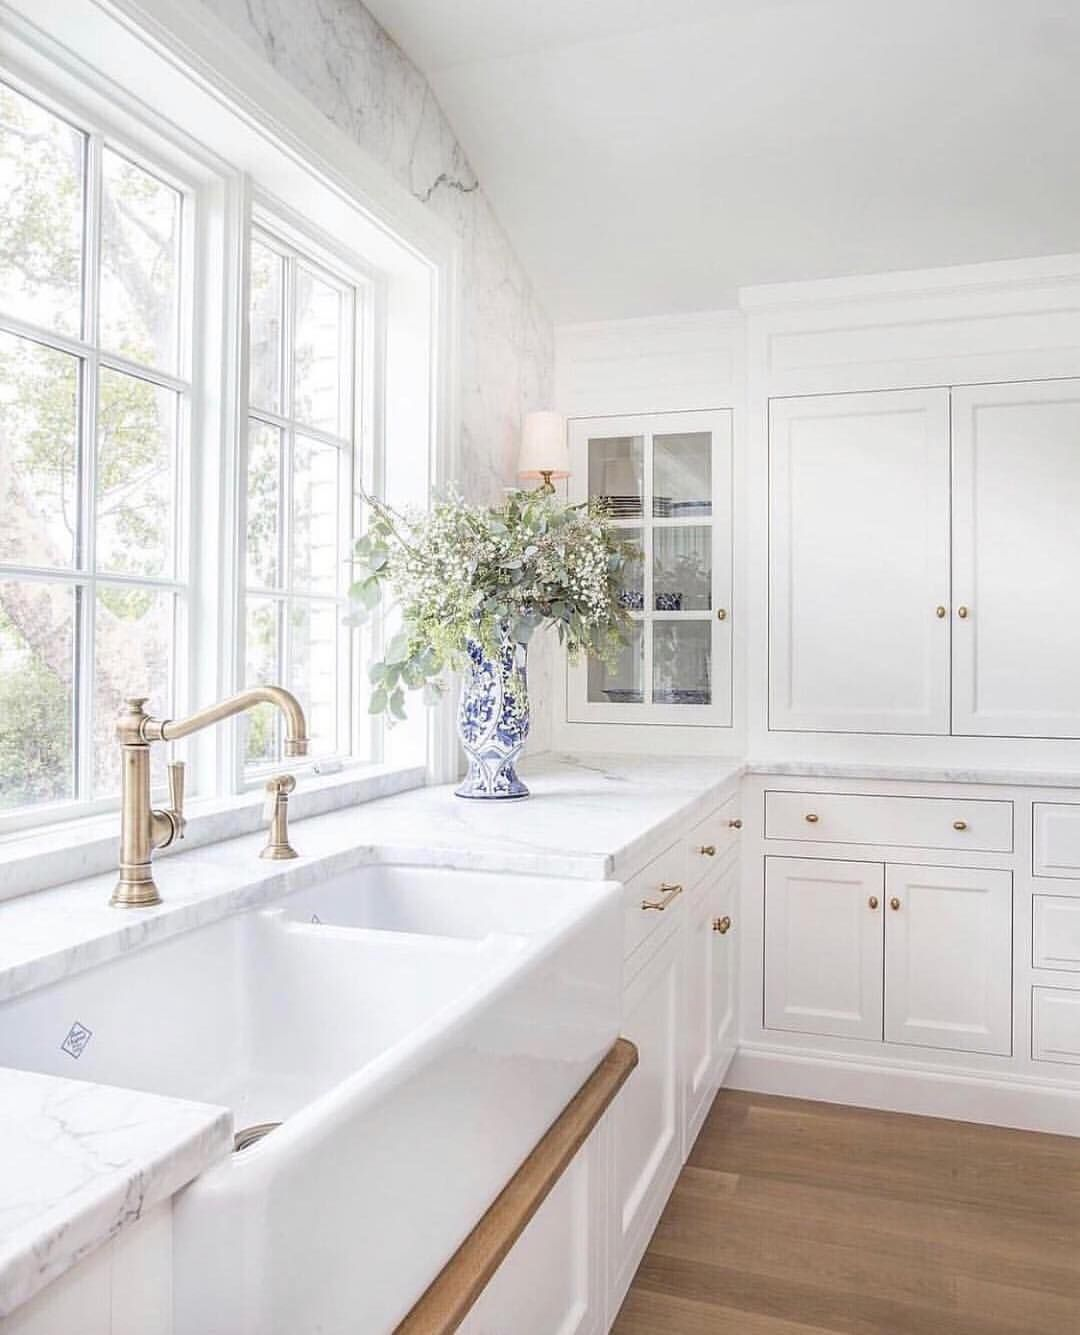 White Kitchen Cabinets Out Of Style: I Don't Think White Kitchens Will Ever Go Out Of Style